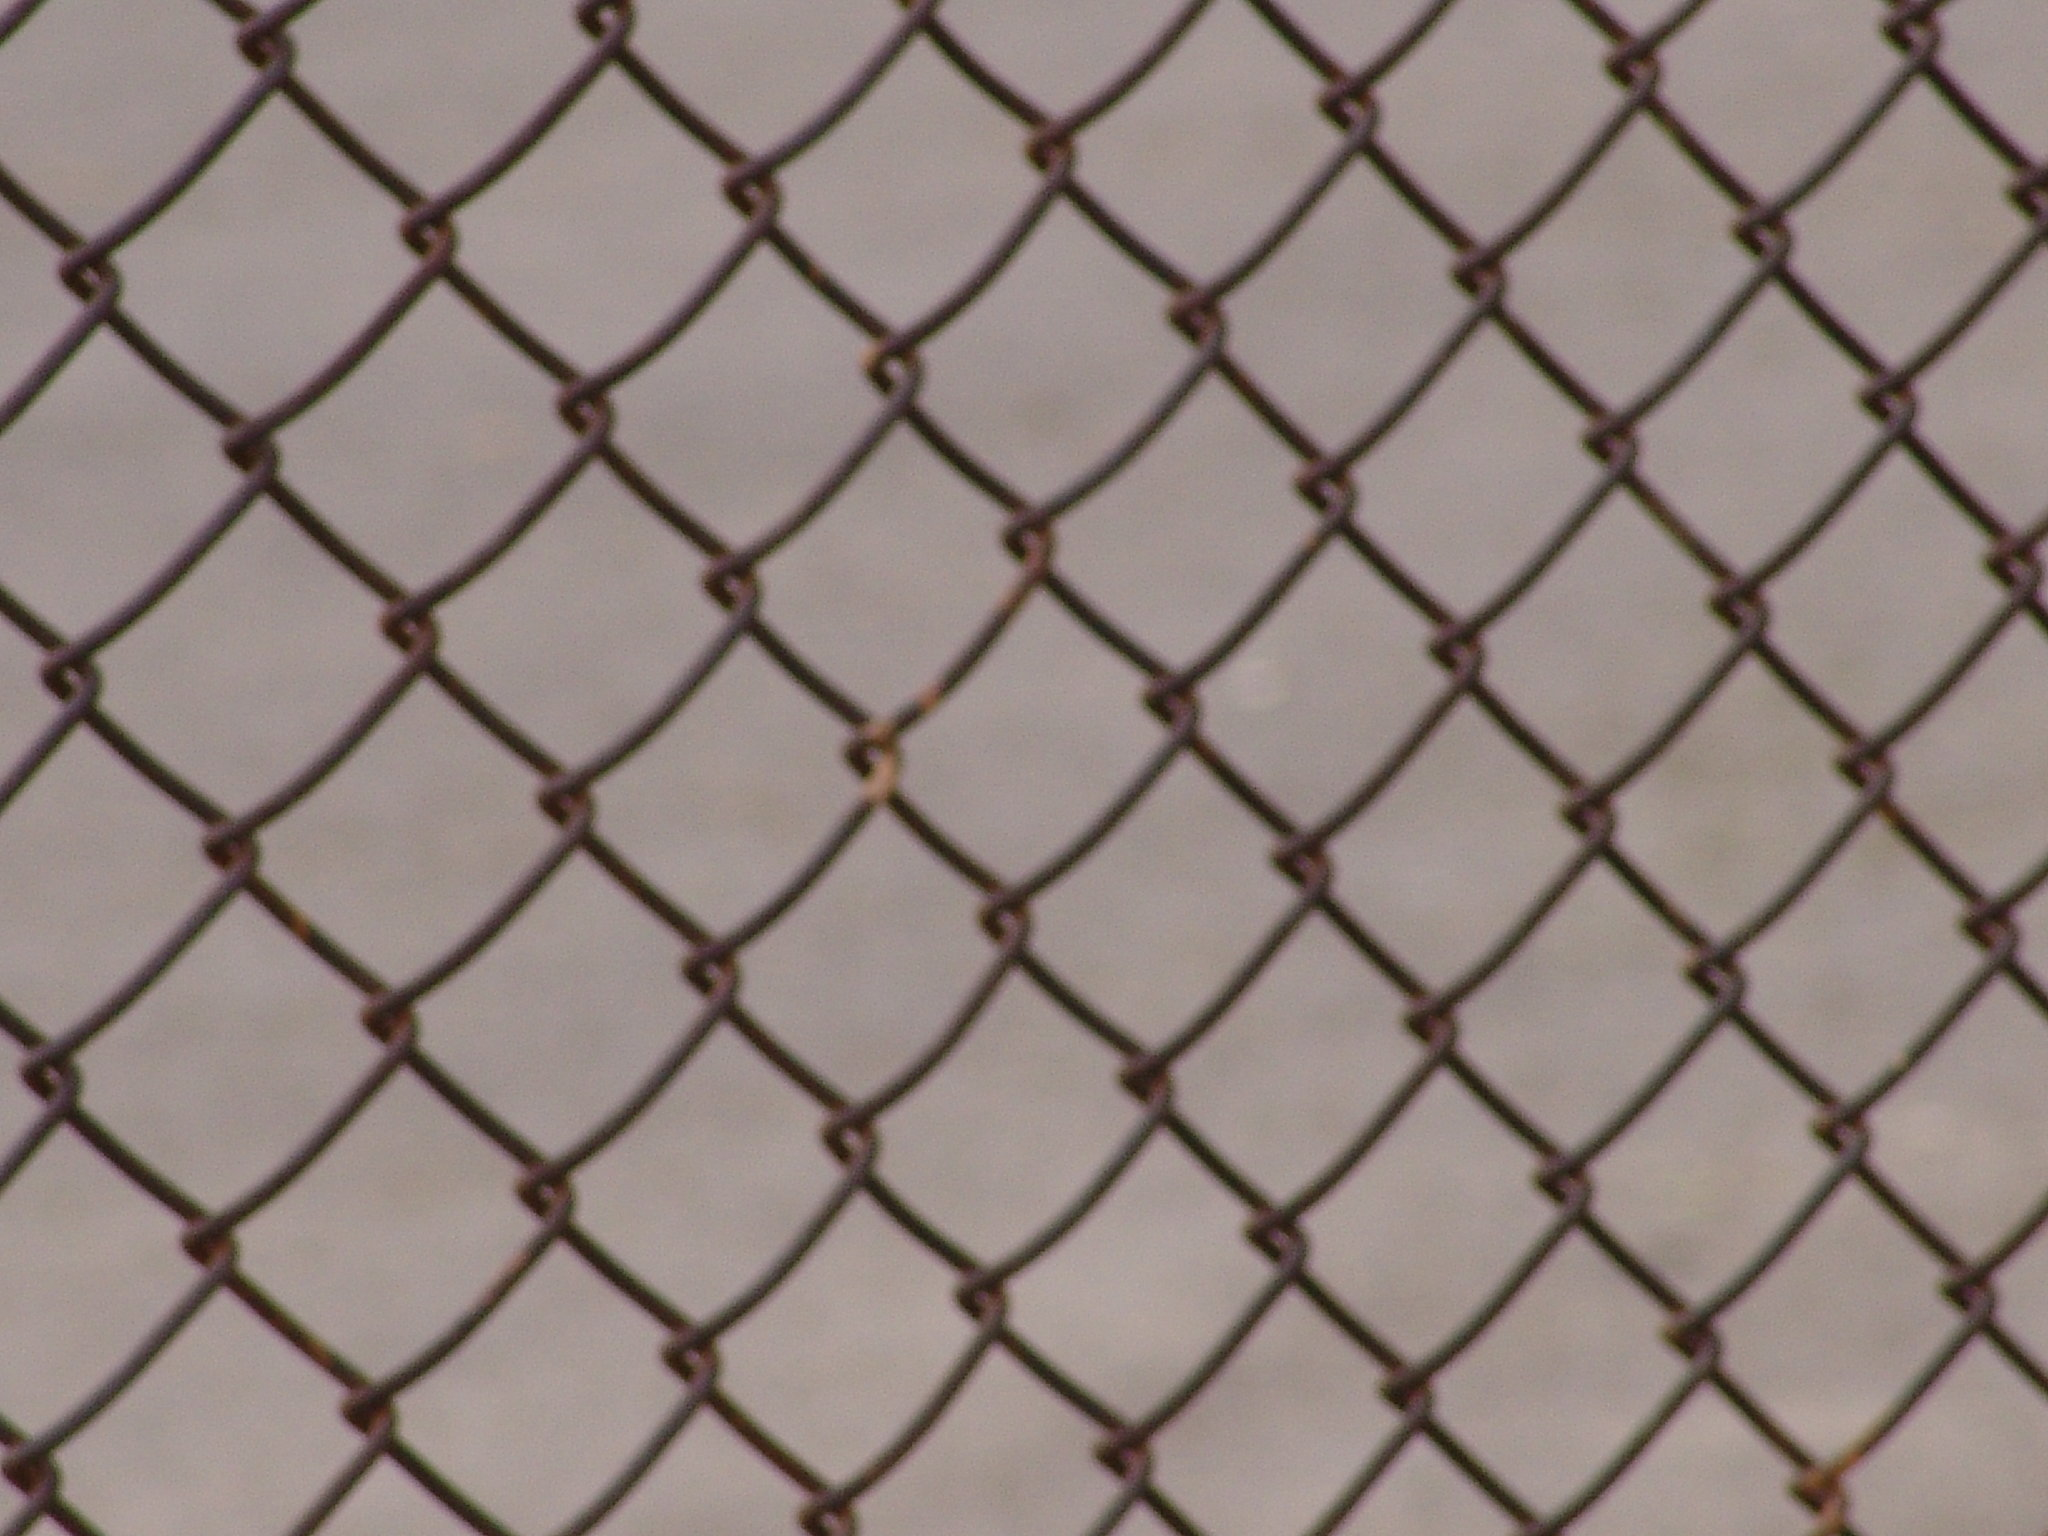 Parents Arrested For Keeping Autistic Son in a Cage